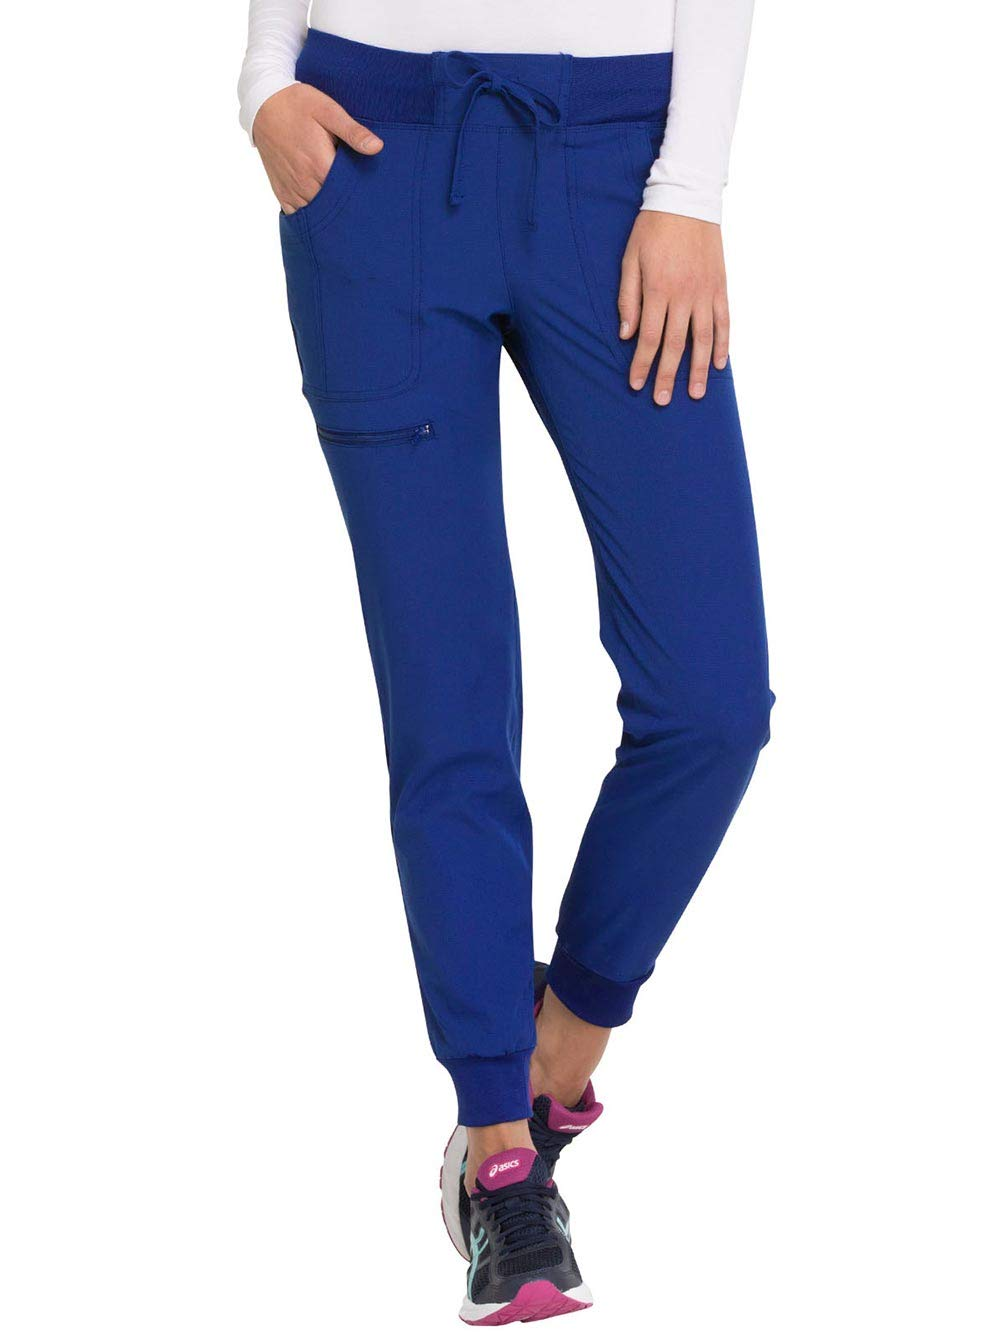 HeartSoul Break On Through HS030 The Jogger Low Rise Tapered Leg Pant (Royal, X-Small Petite) by HeartSoul